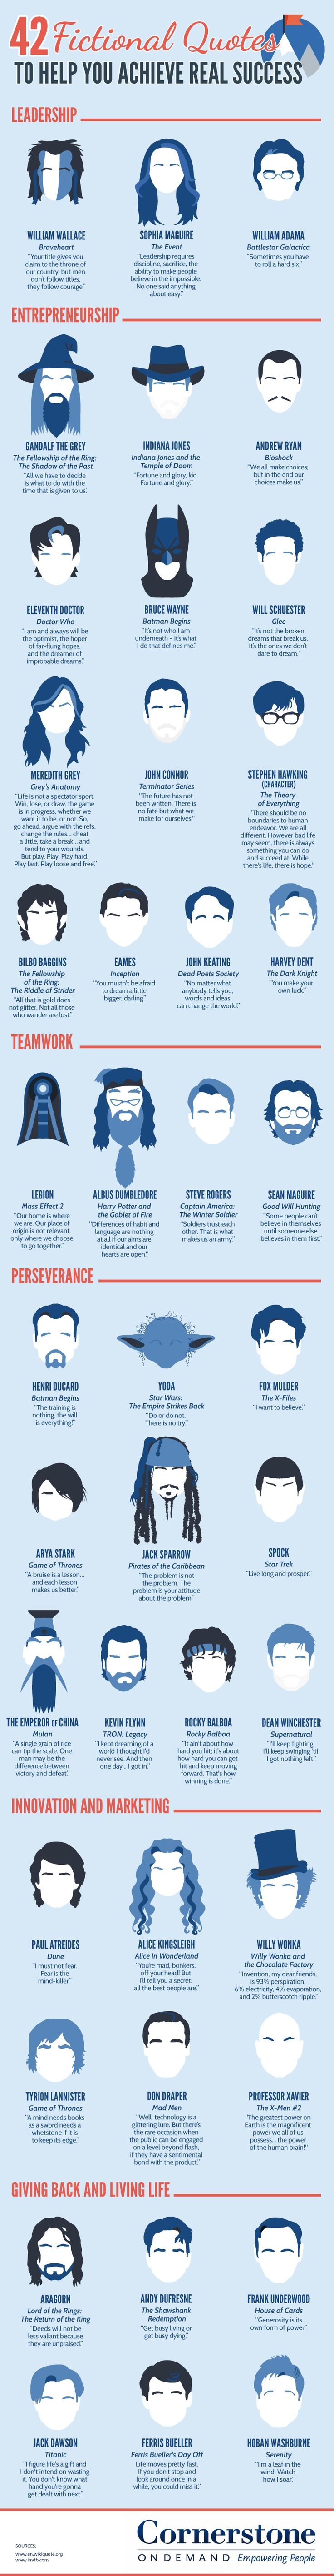 42 Fictional Quotes to Help You Achieve Real Success #infographic